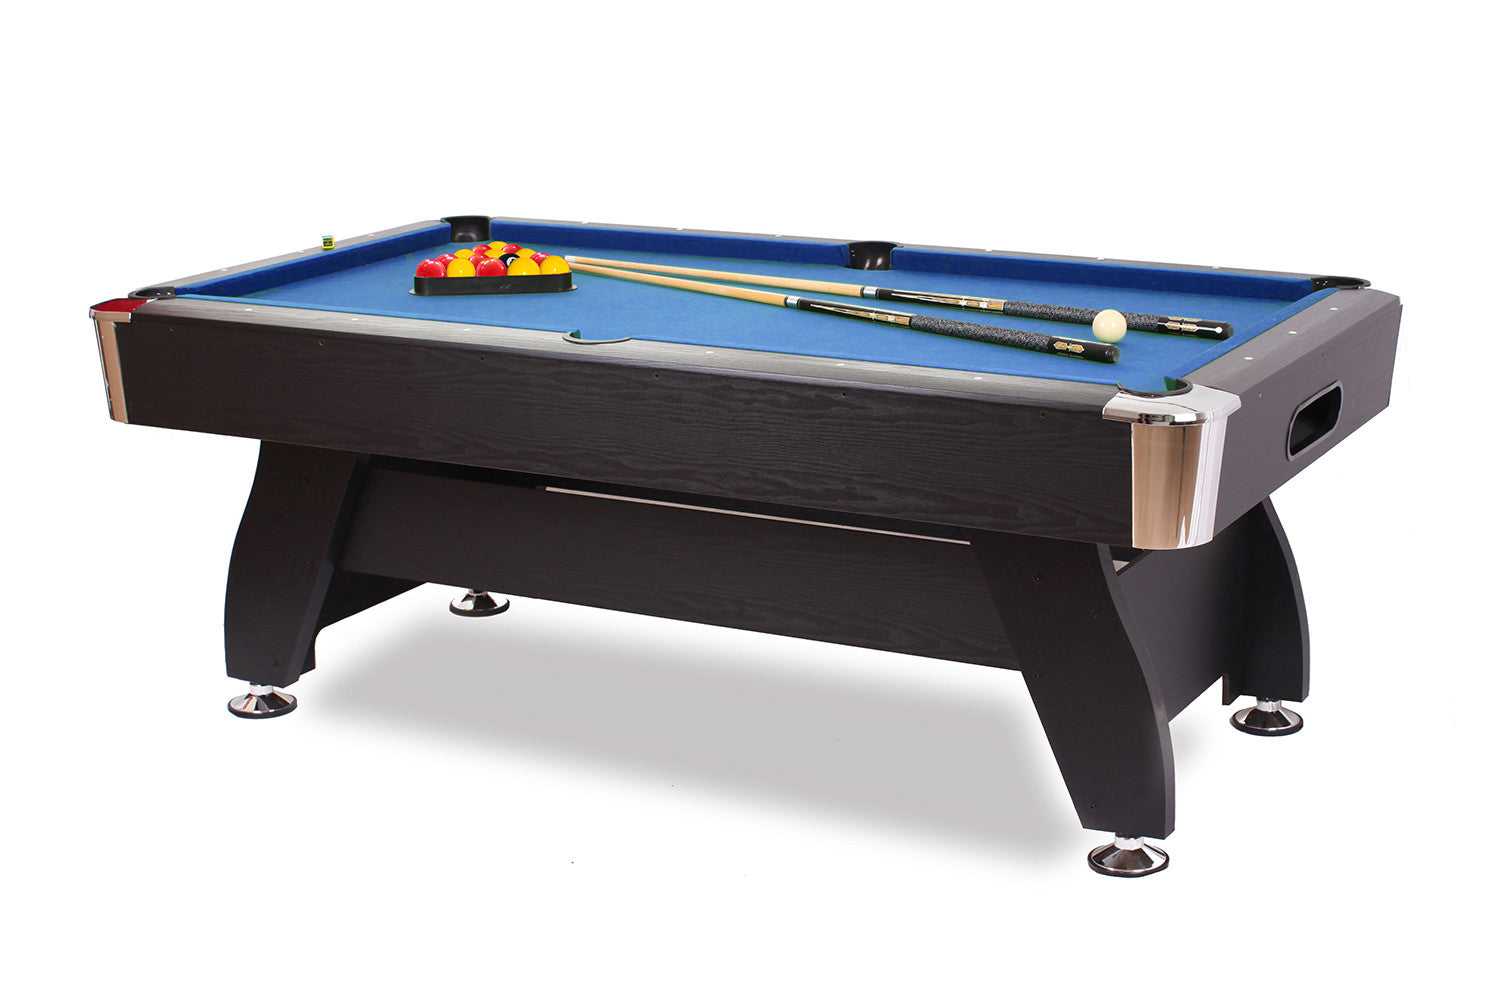 billard anglais 8 pool club pro billards defaistre. Black Bedroom Furniture Sets. Home Design Ideas